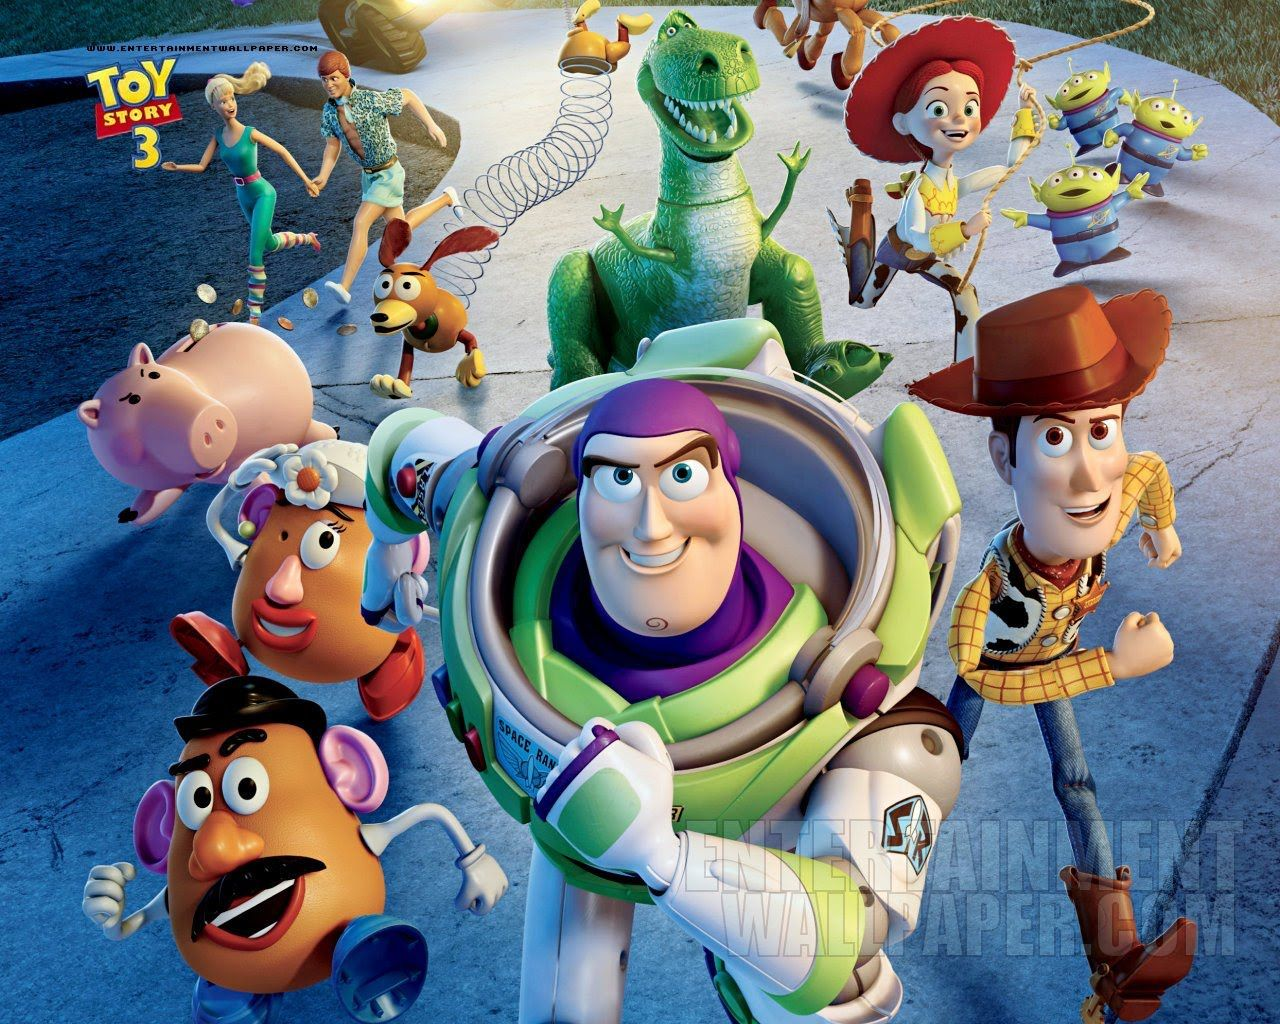 Toy Story 3 Full Movie HD 720p 2015 - Best Animation Movies - Animation ...